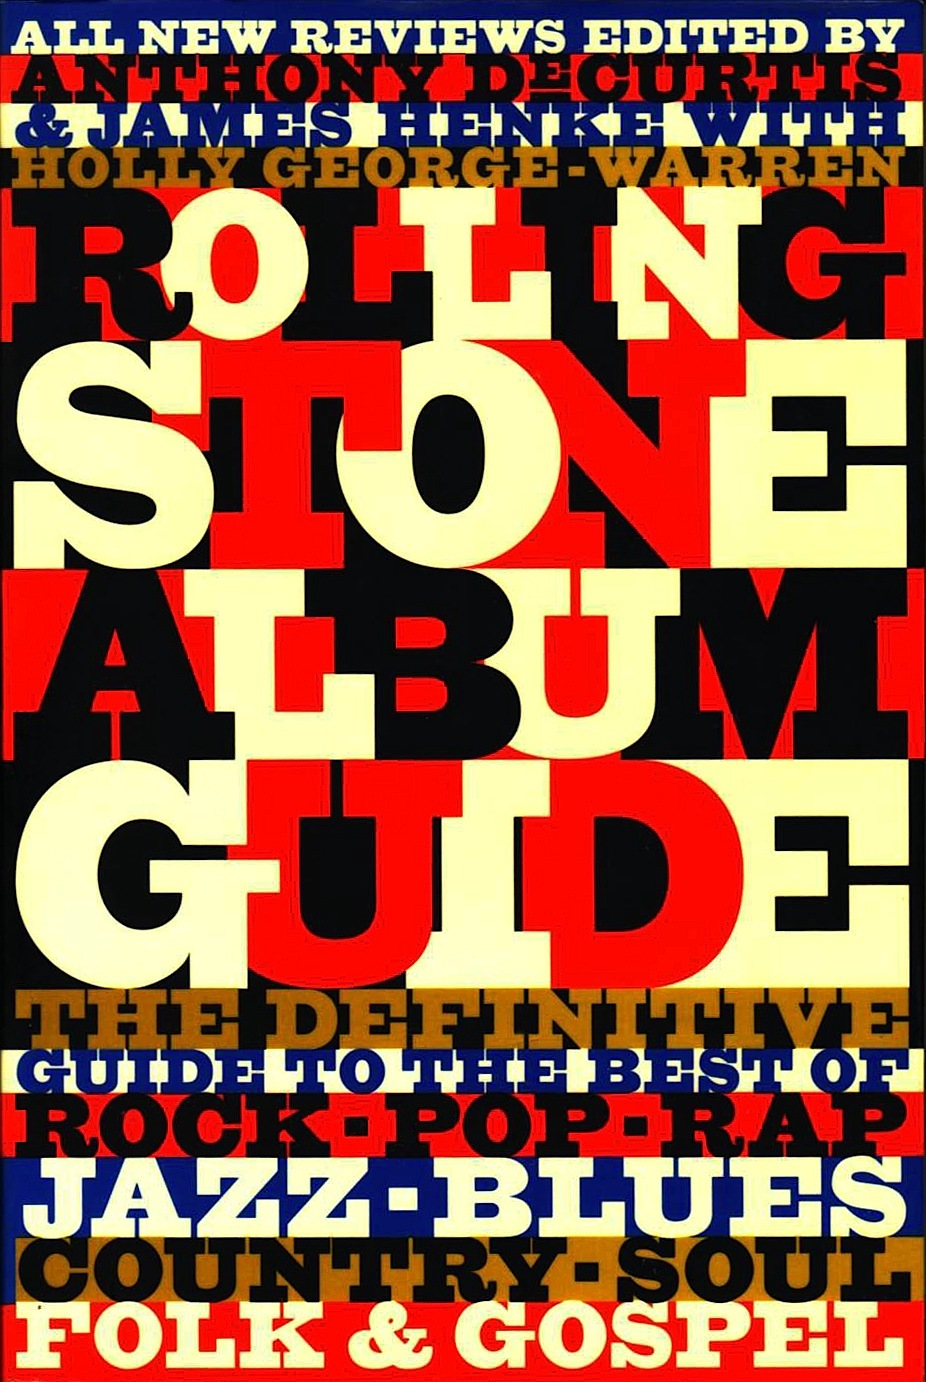 Rolling Stone Album Guide: All New Reviews